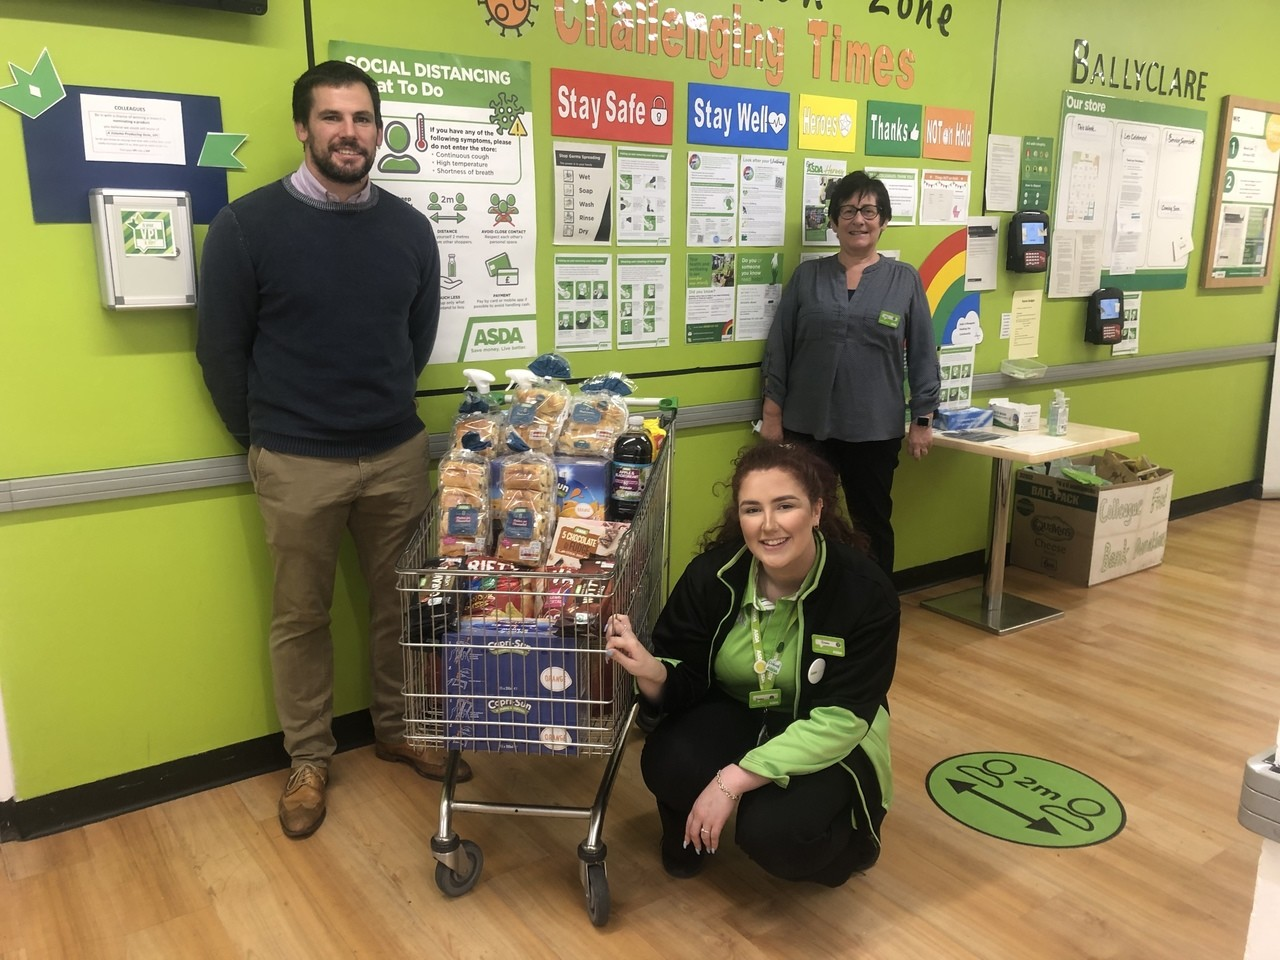 Ballyclare Rugby Club clean up! | Asda Ballyclare